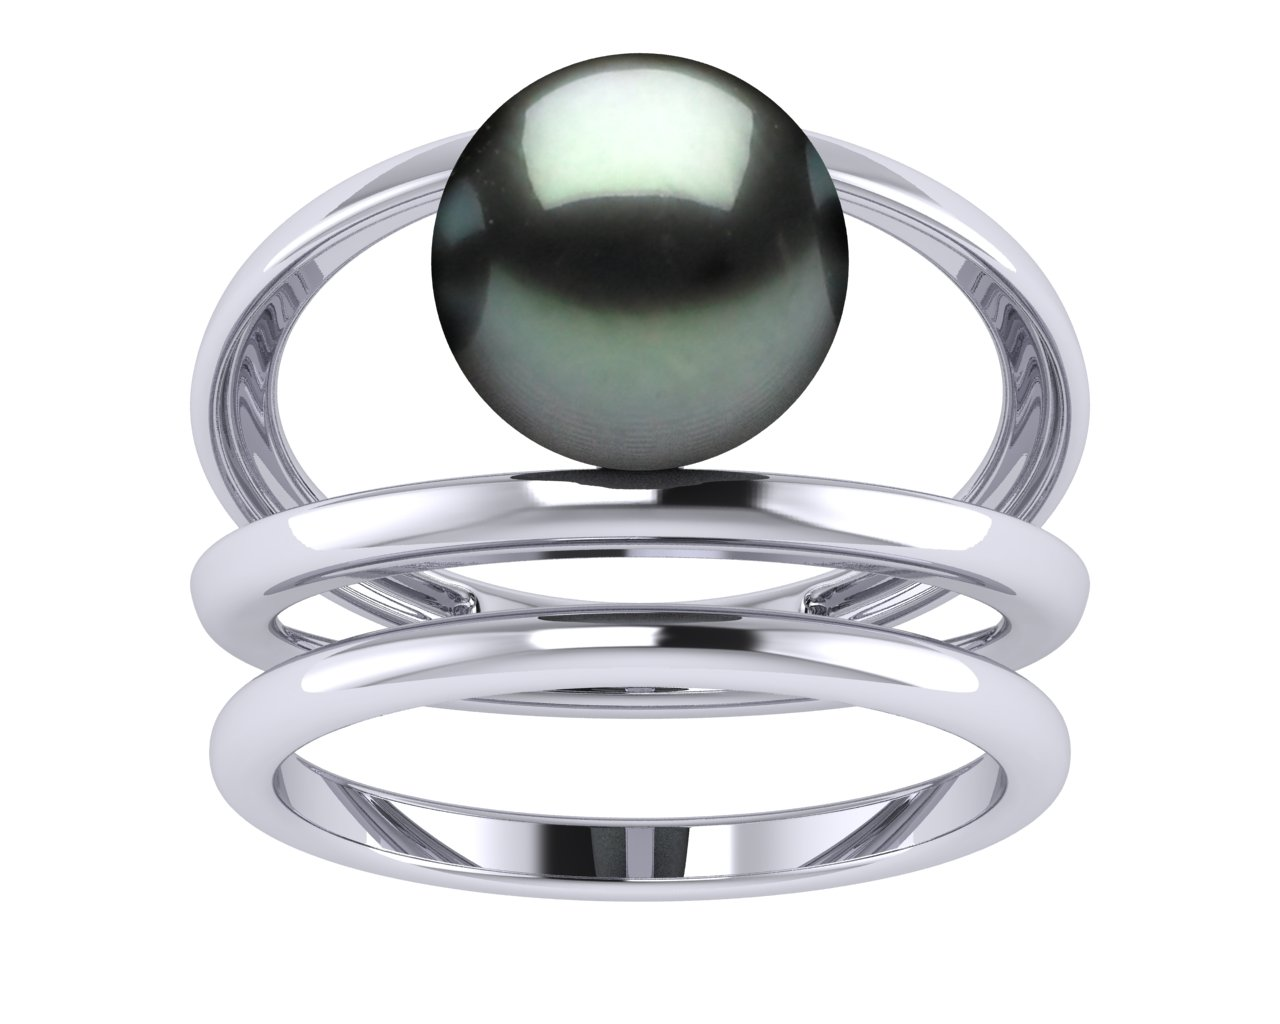 tahitian pearl leo ii engagement ring and wedding band set